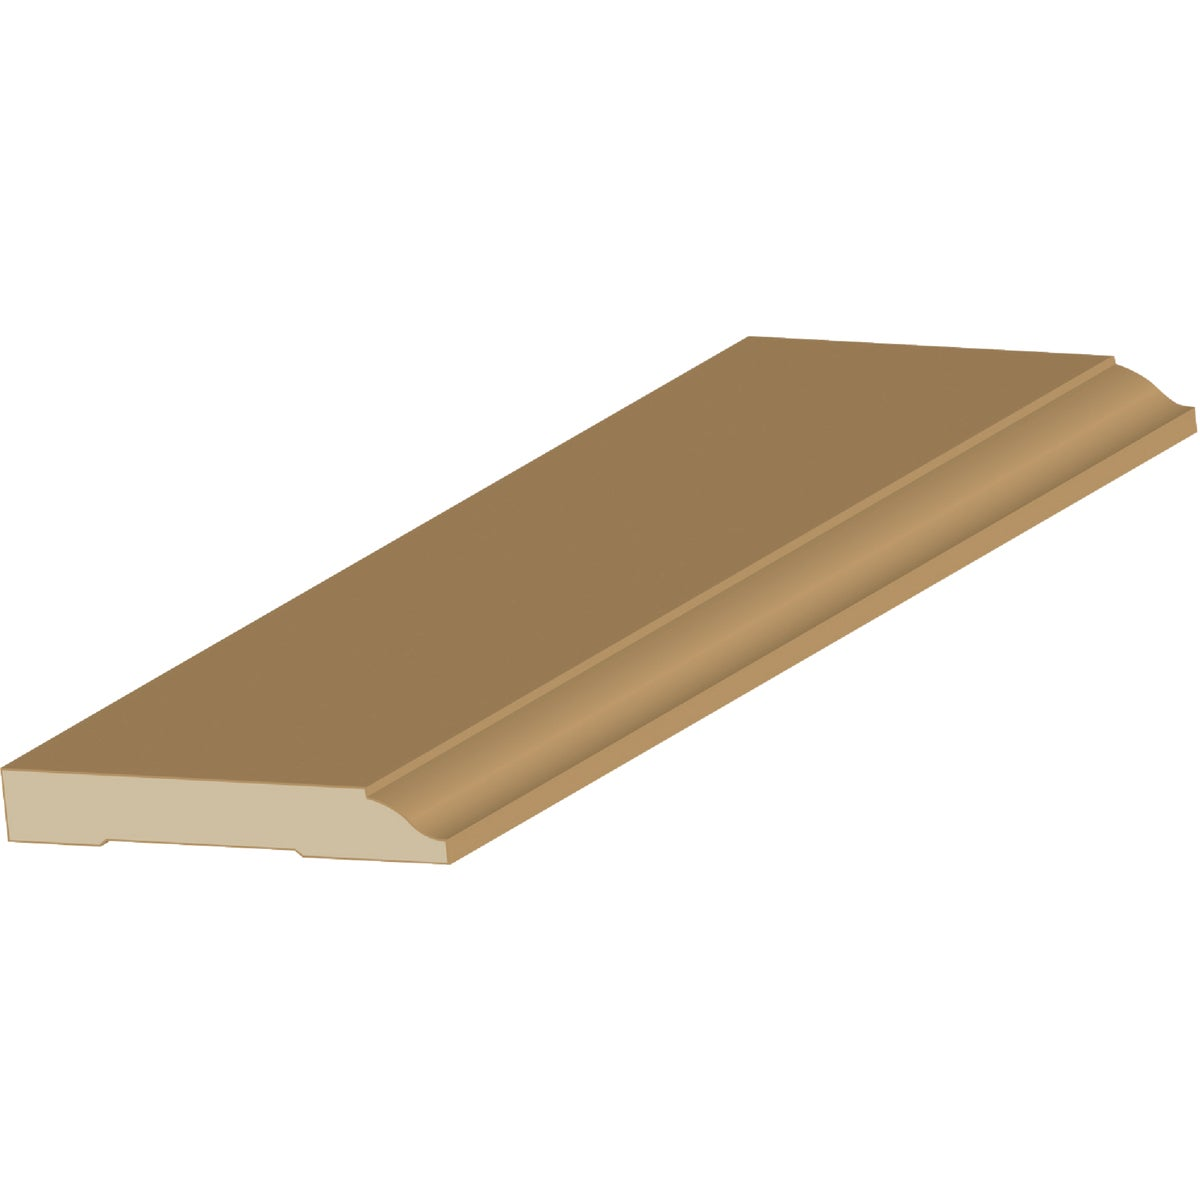 WM623 PMDF 8' COL BASE - 62380MDFD by Jim White Millwork